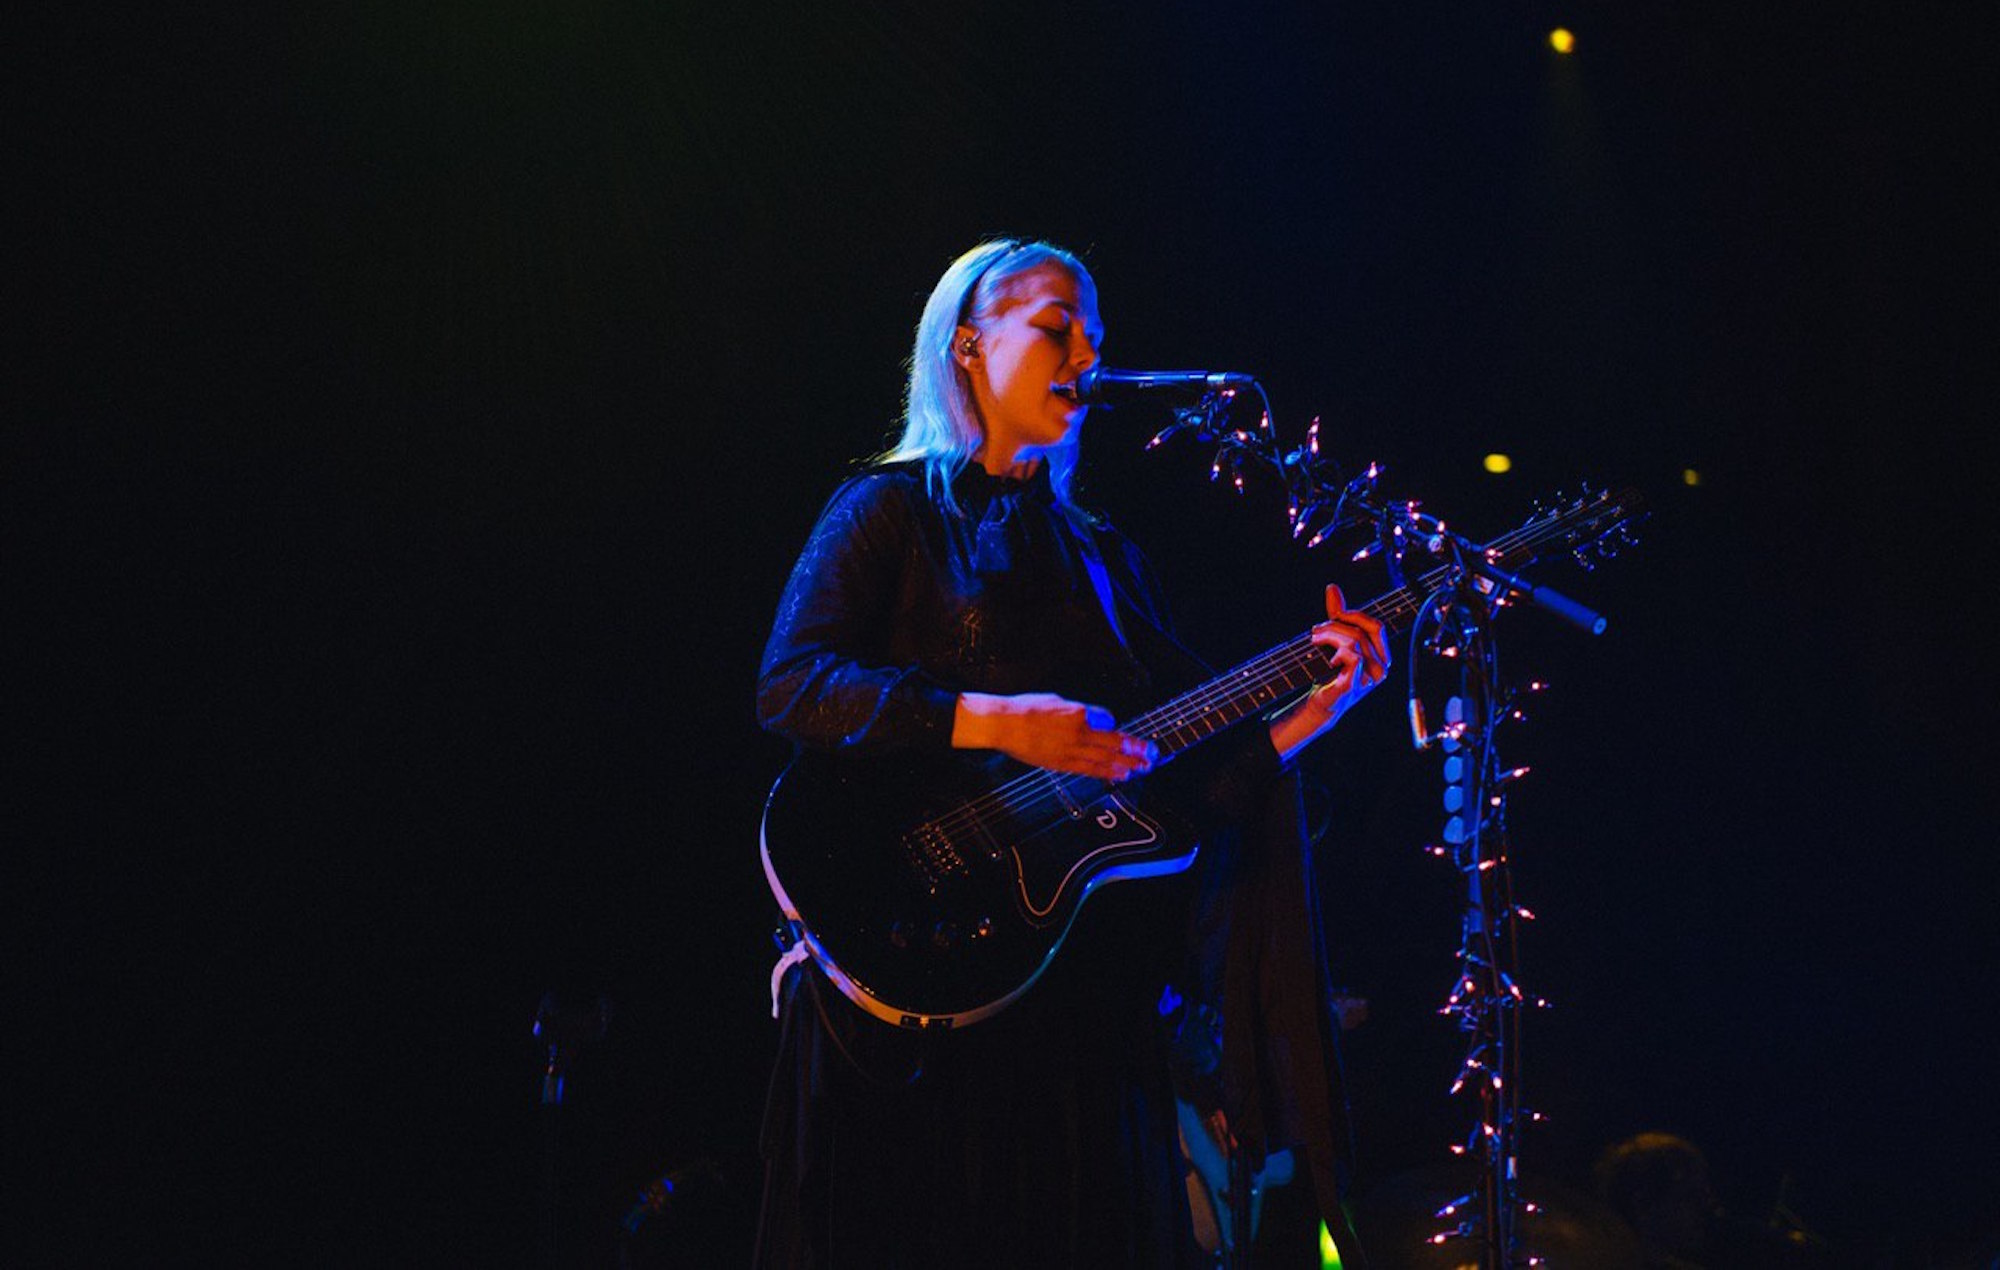 Phoebe Bridgers at MIRRORS Festival 2019